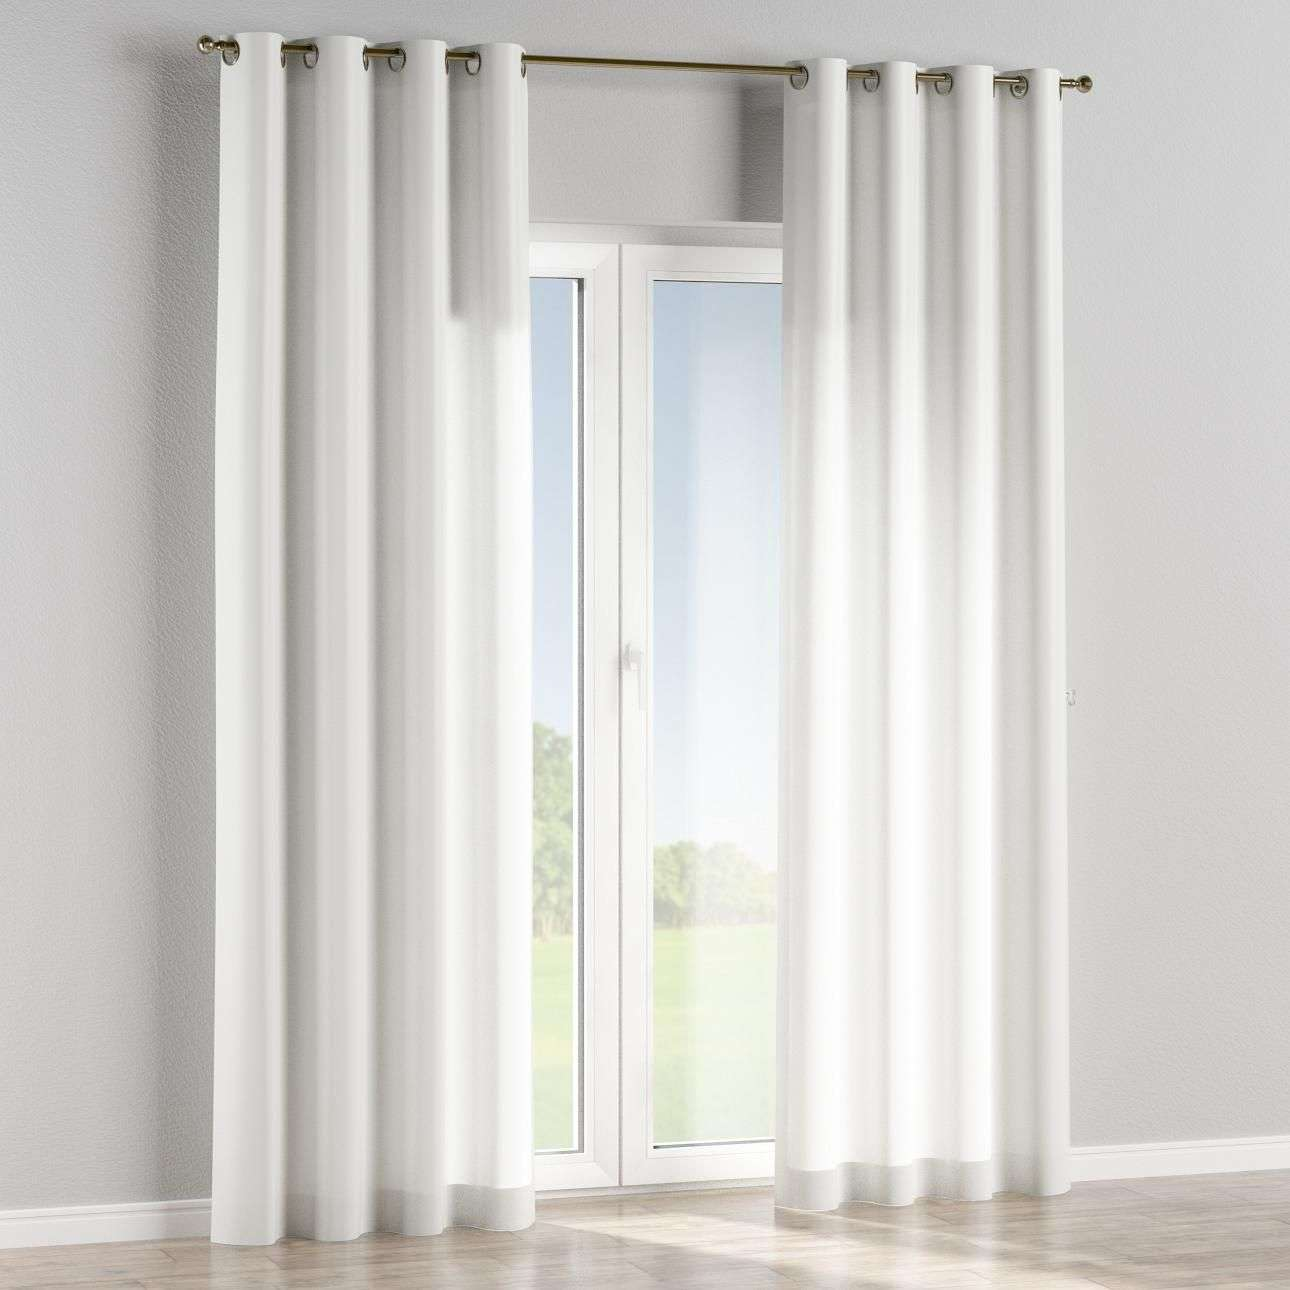 Eyelet curtains in collection Nature, fabric: 159-07